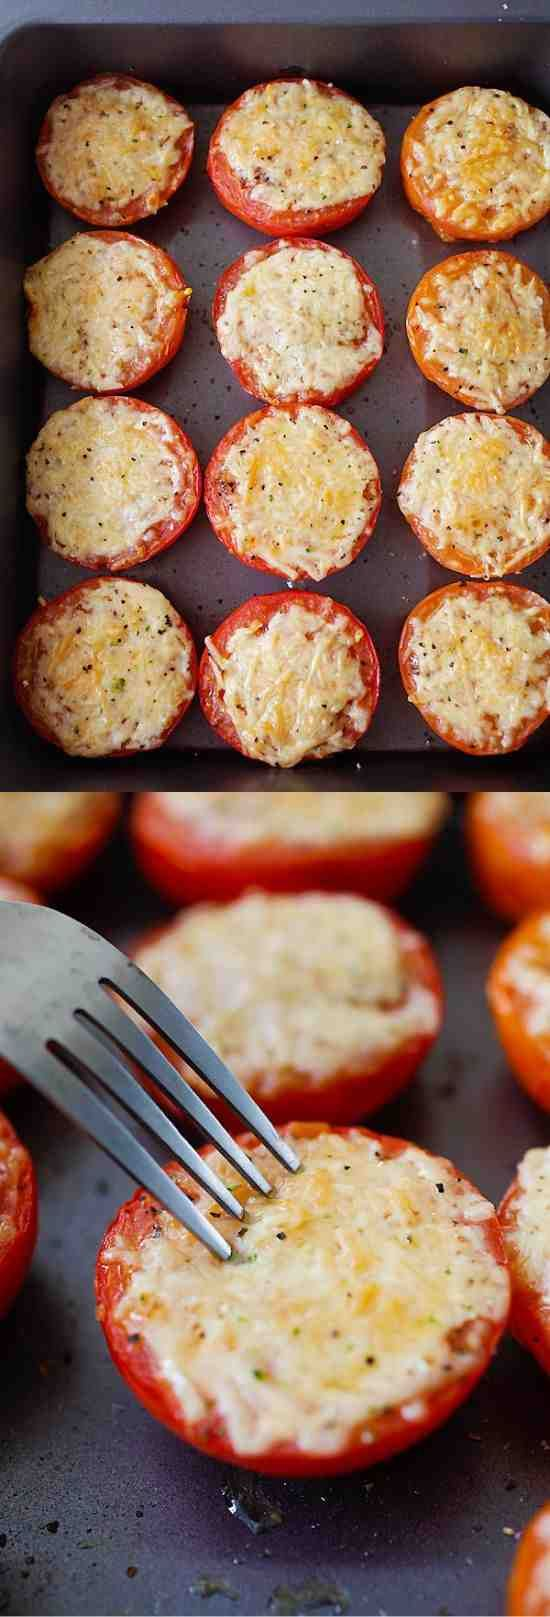 Parmesan Roasted Tomatoes – juicy and plump roasted tomatoes loaded with Parmesan cheese. So easy to make, fool-proof and amazing! …